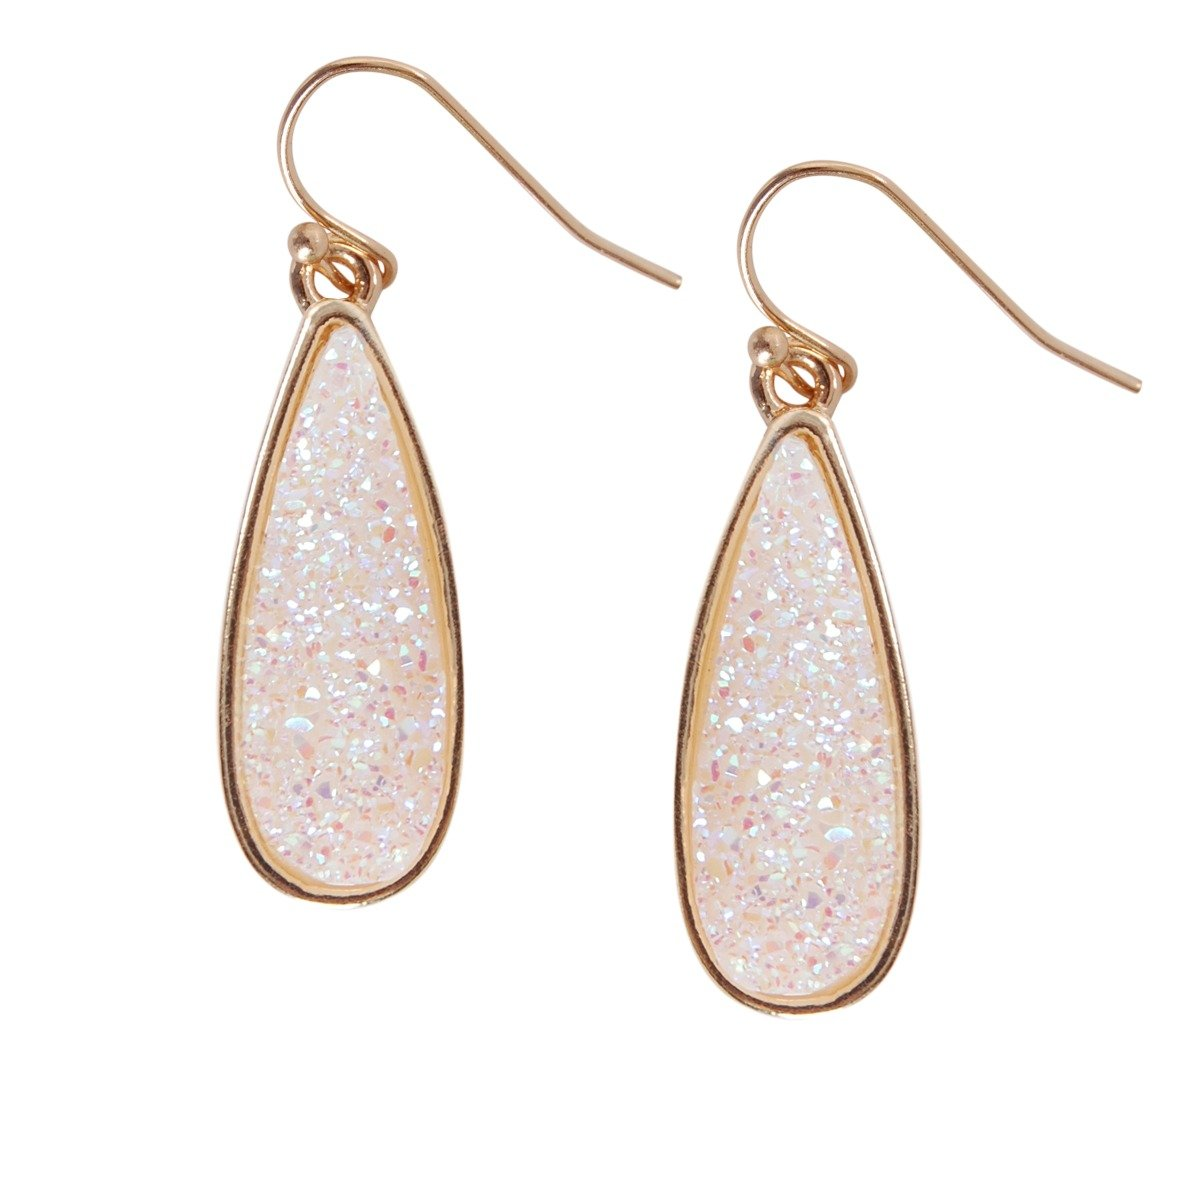 Humble Chic Simulated Druzy Drop Dangles - Sparkly Long Teardrop Dangly Earrings, Simulated Opal, Sparkly Pearly White, Opalescent, Simulated Moonstone, Gold-Tone